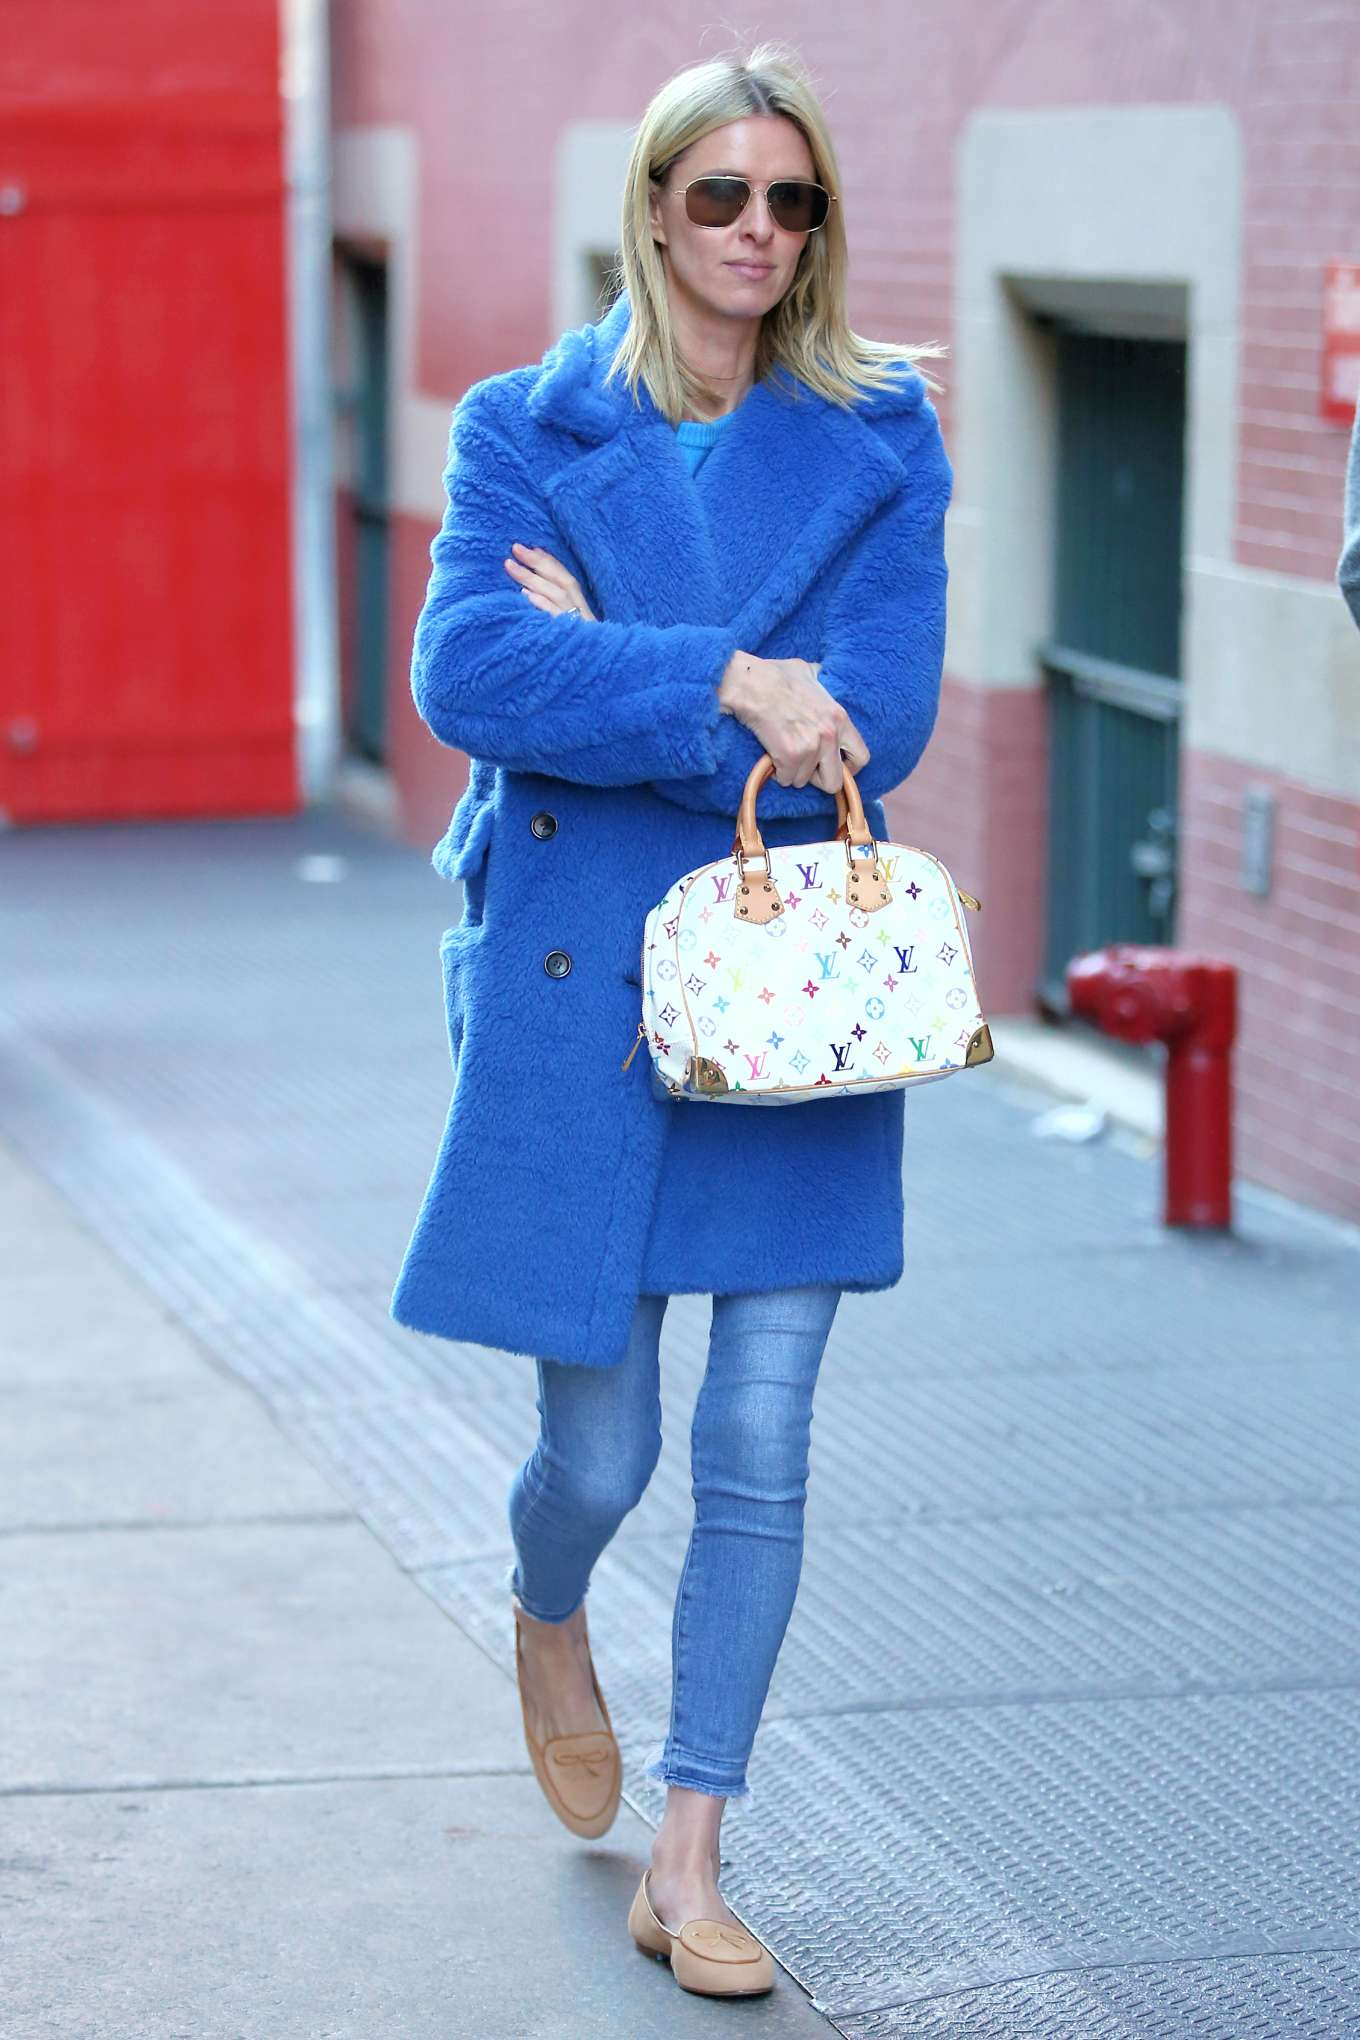 Nicky Hilton 2020 : Nicky Hilton in Blue Coat – Out and about in New York City-04